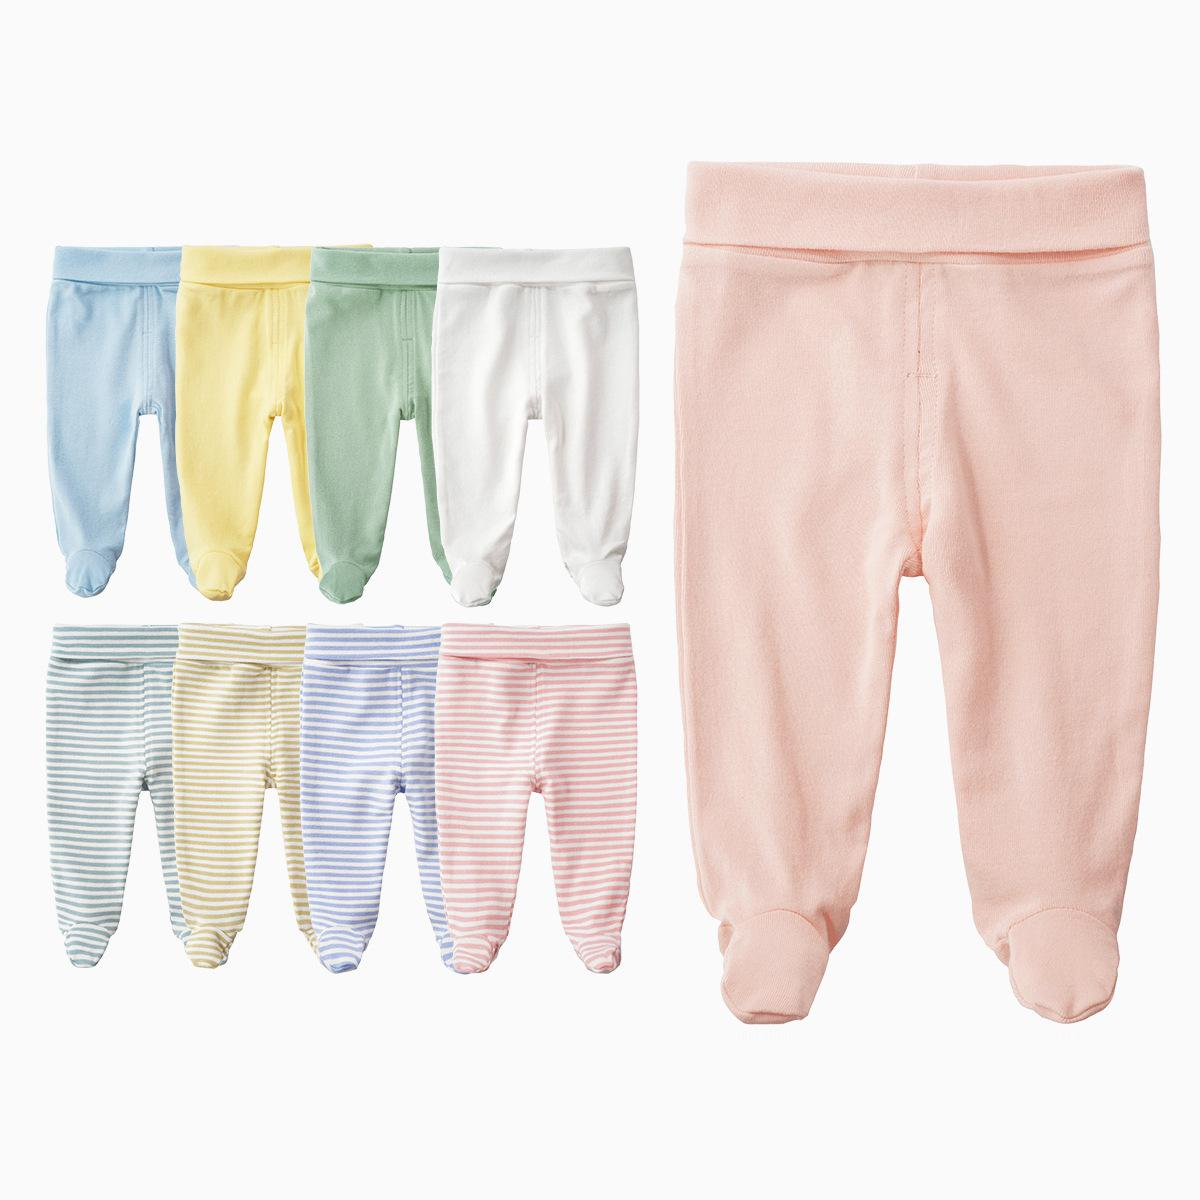 Baby Pants Socks Trousers Newborn High-Waist Infant Even Unisex Cotton 0-3-6M Bag title=